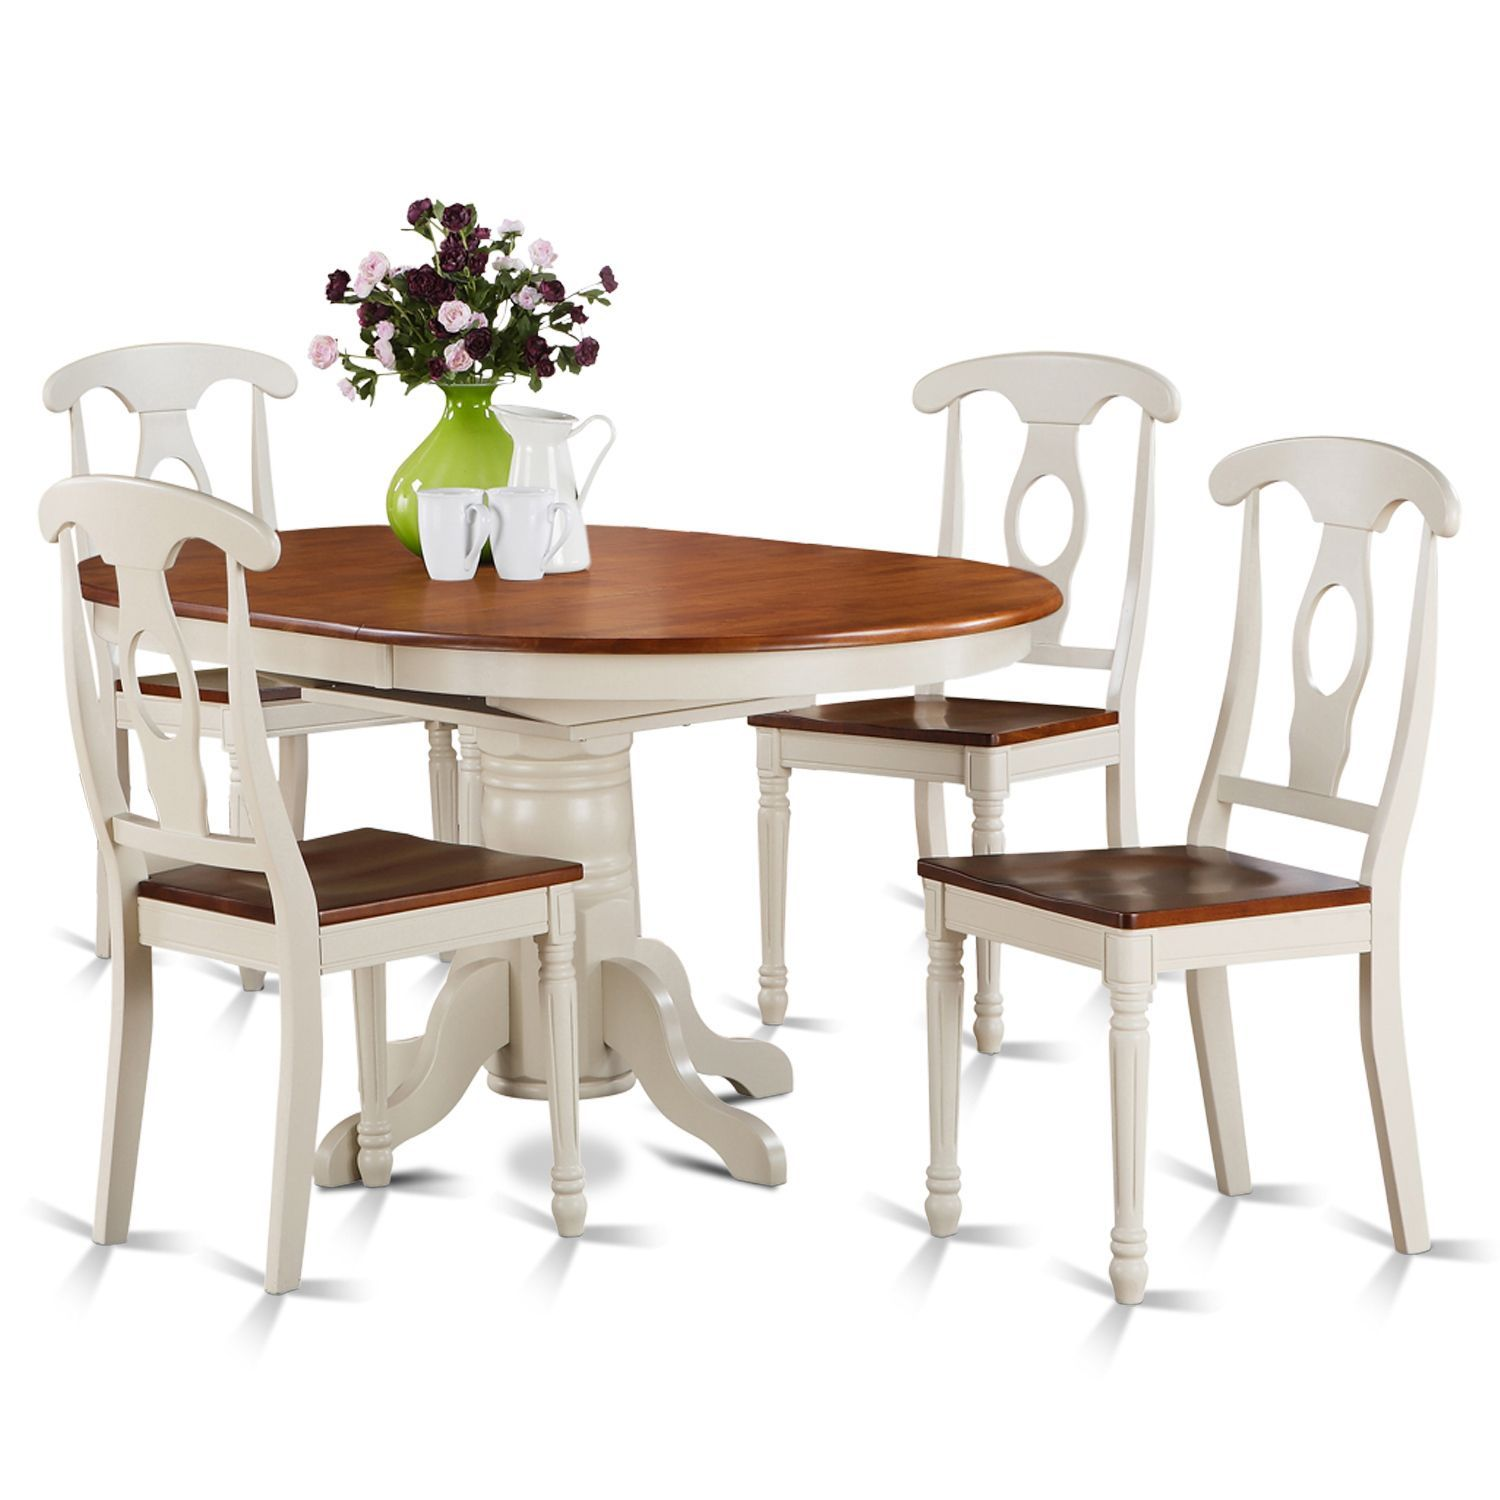 Overstock Com Online Shopping Bedding Furniture Electronics Jewelry Clothing More Oval Table Dining Kitchen Table Settings Dining Table Chairs